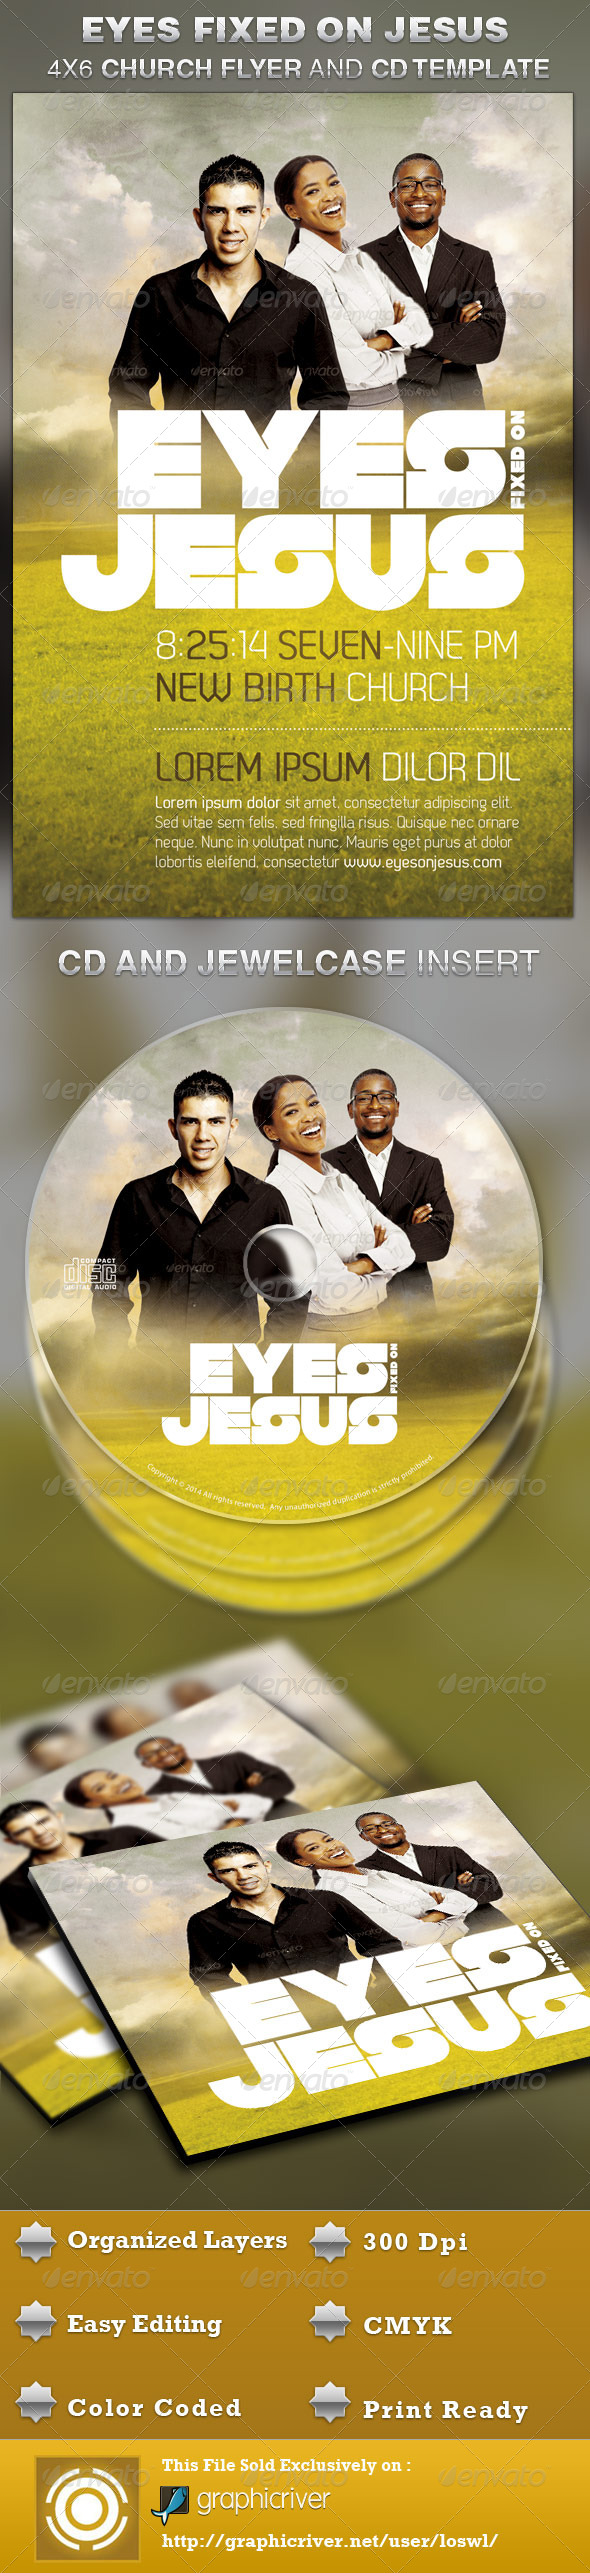 Eyes Fixed on Jesus Church Flyer and CD Template - Church Flyers